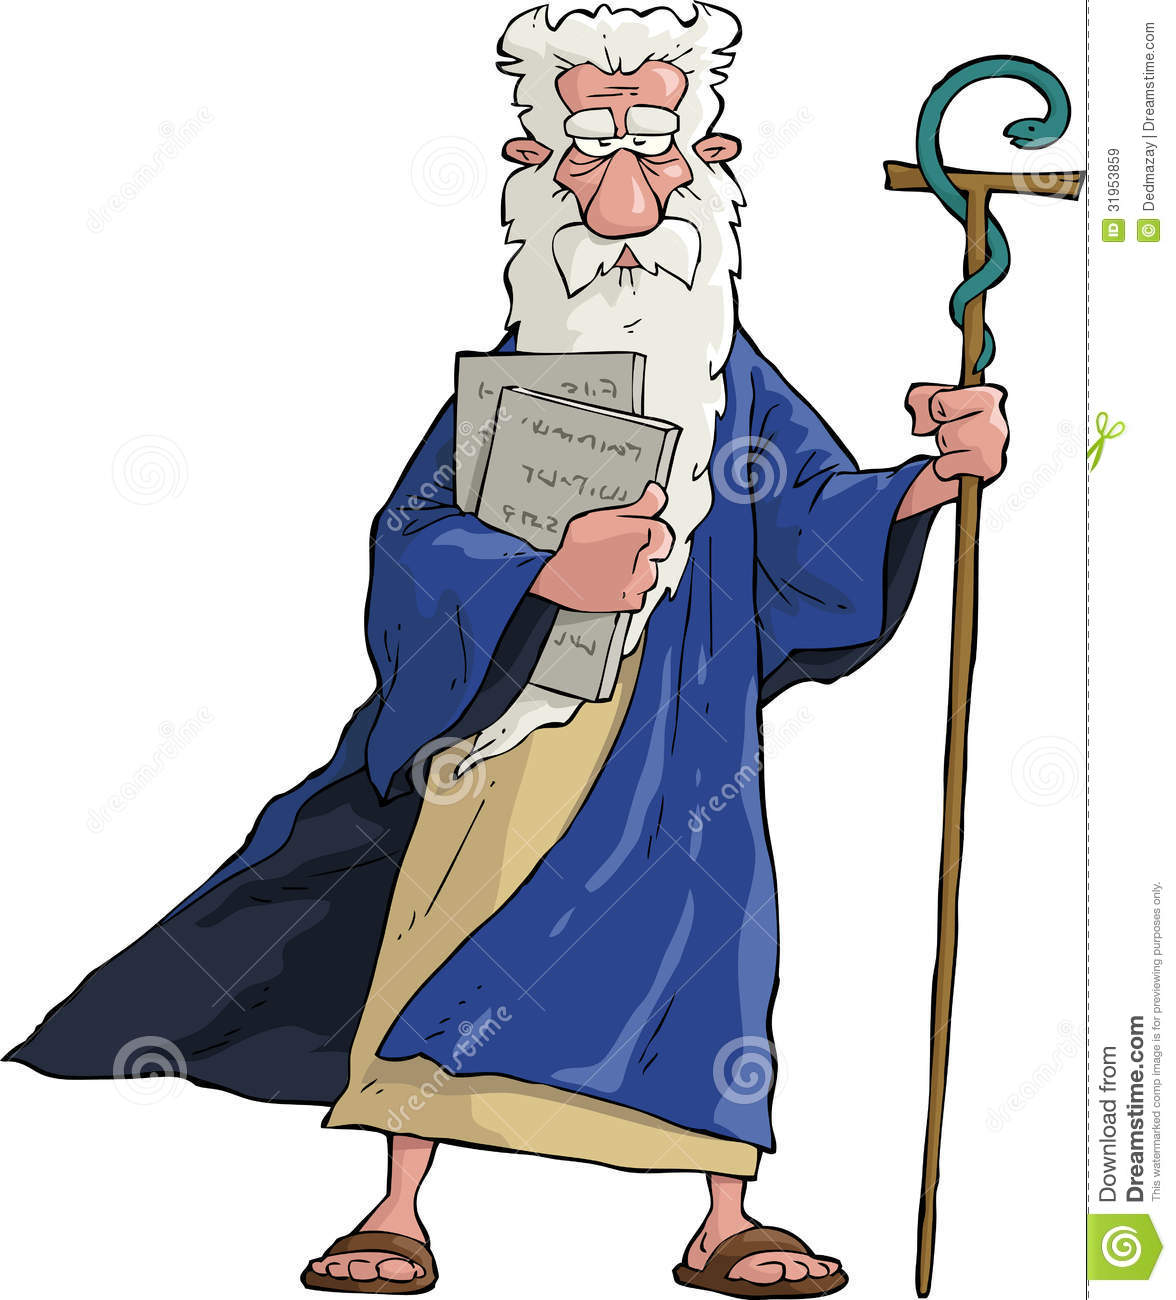 Cartoon Moses Royalty Free Stock Images - Image: 31953859